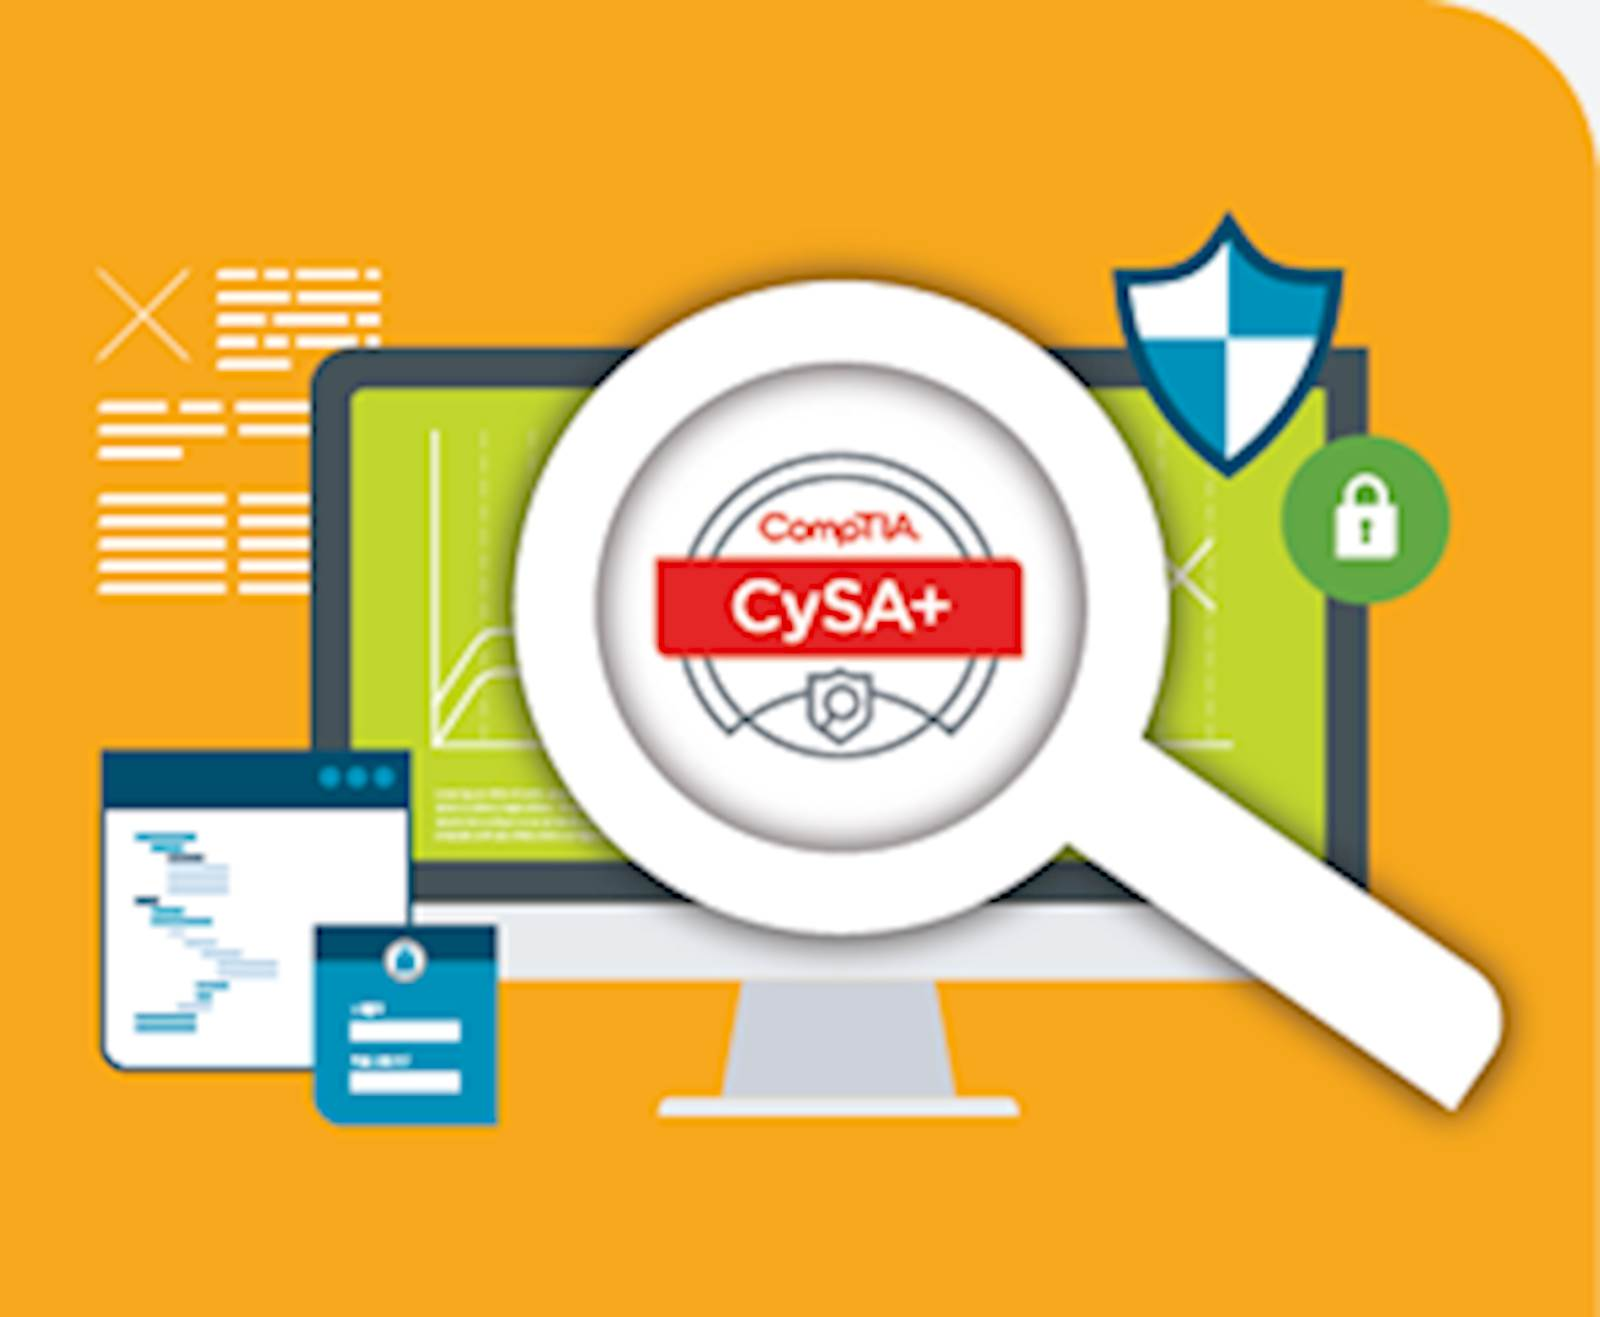 CompTIA Cybersecurity Analyst (CYSA+) exam